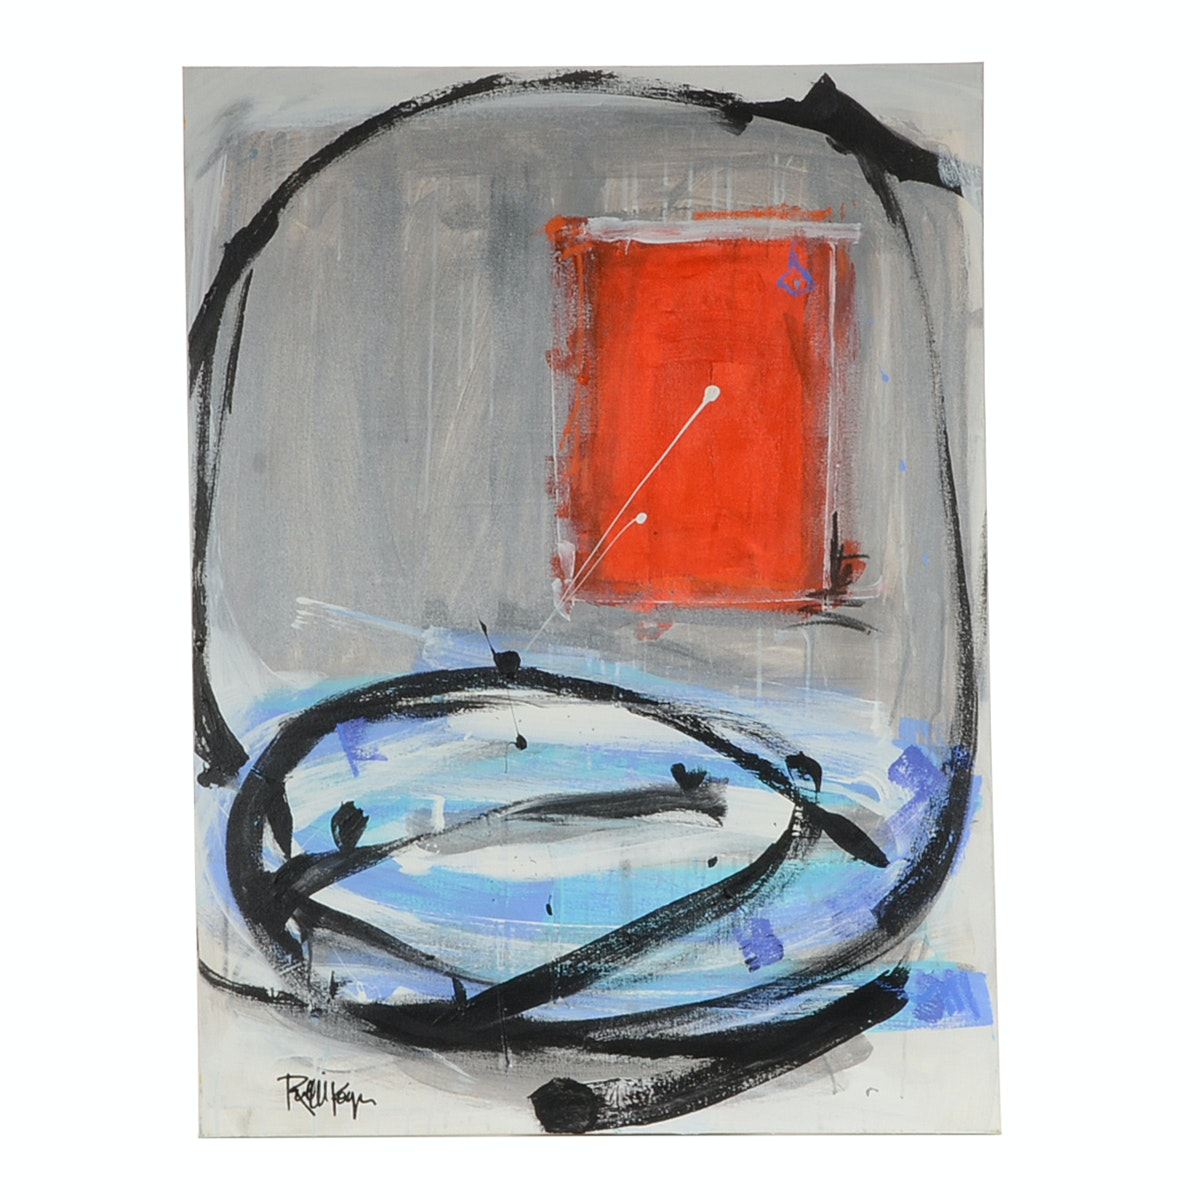 Robbie Kemper Original Abstract Acrylic Painting on Canvas